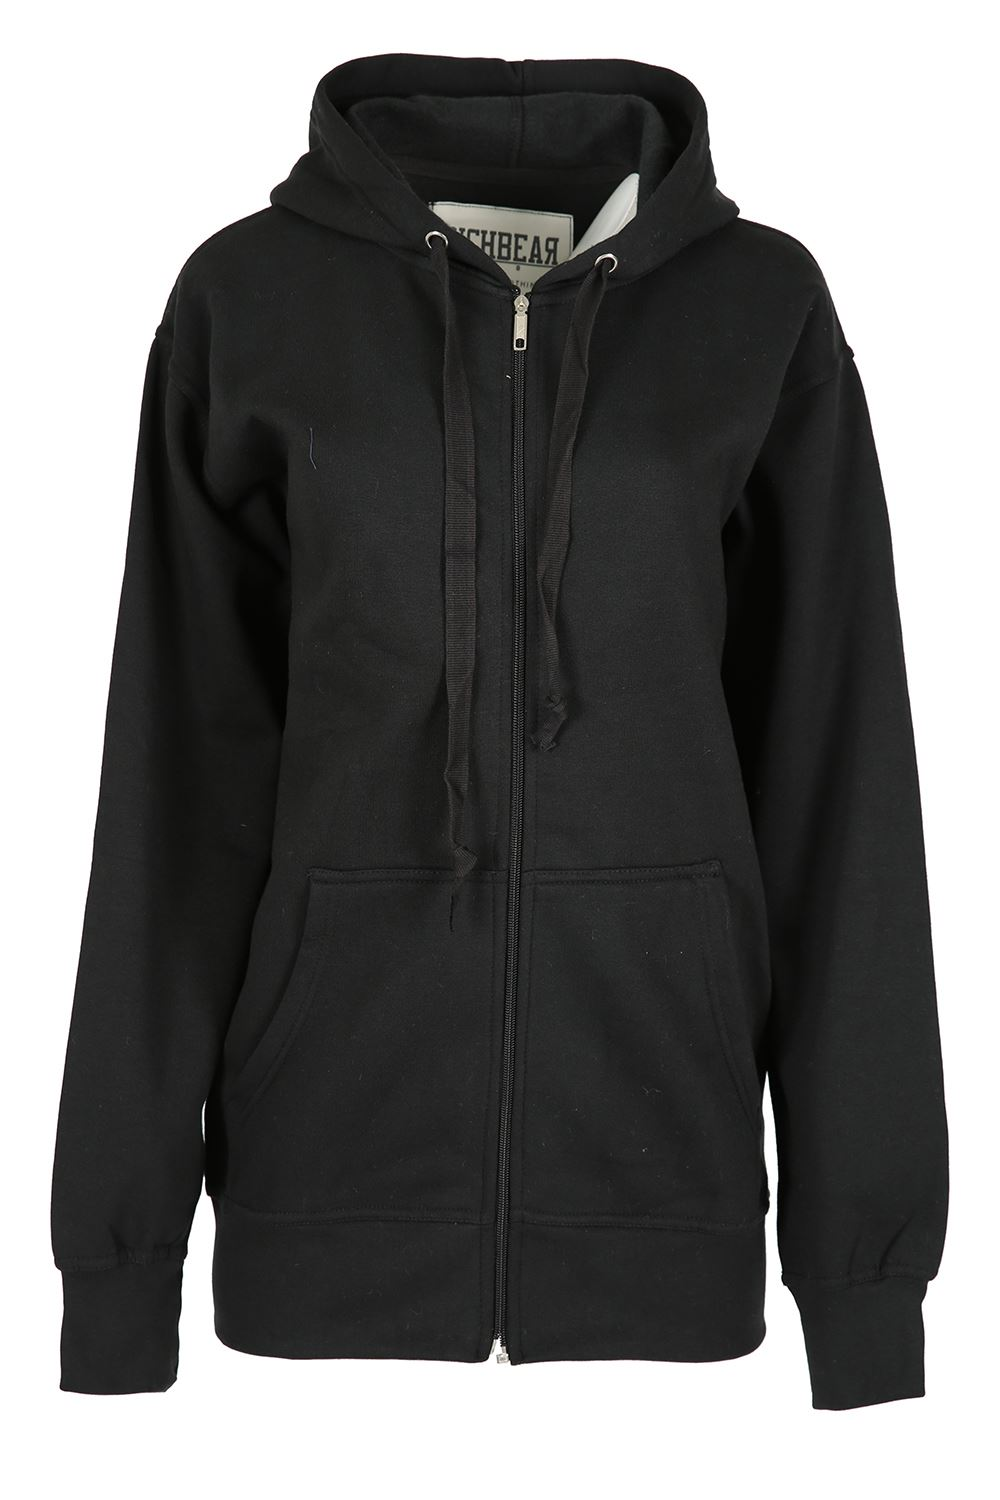 Shop for Plain hoodies & sweatshirts from Zazzle. Choose a design from our huge selection of images, artwork, & photos.